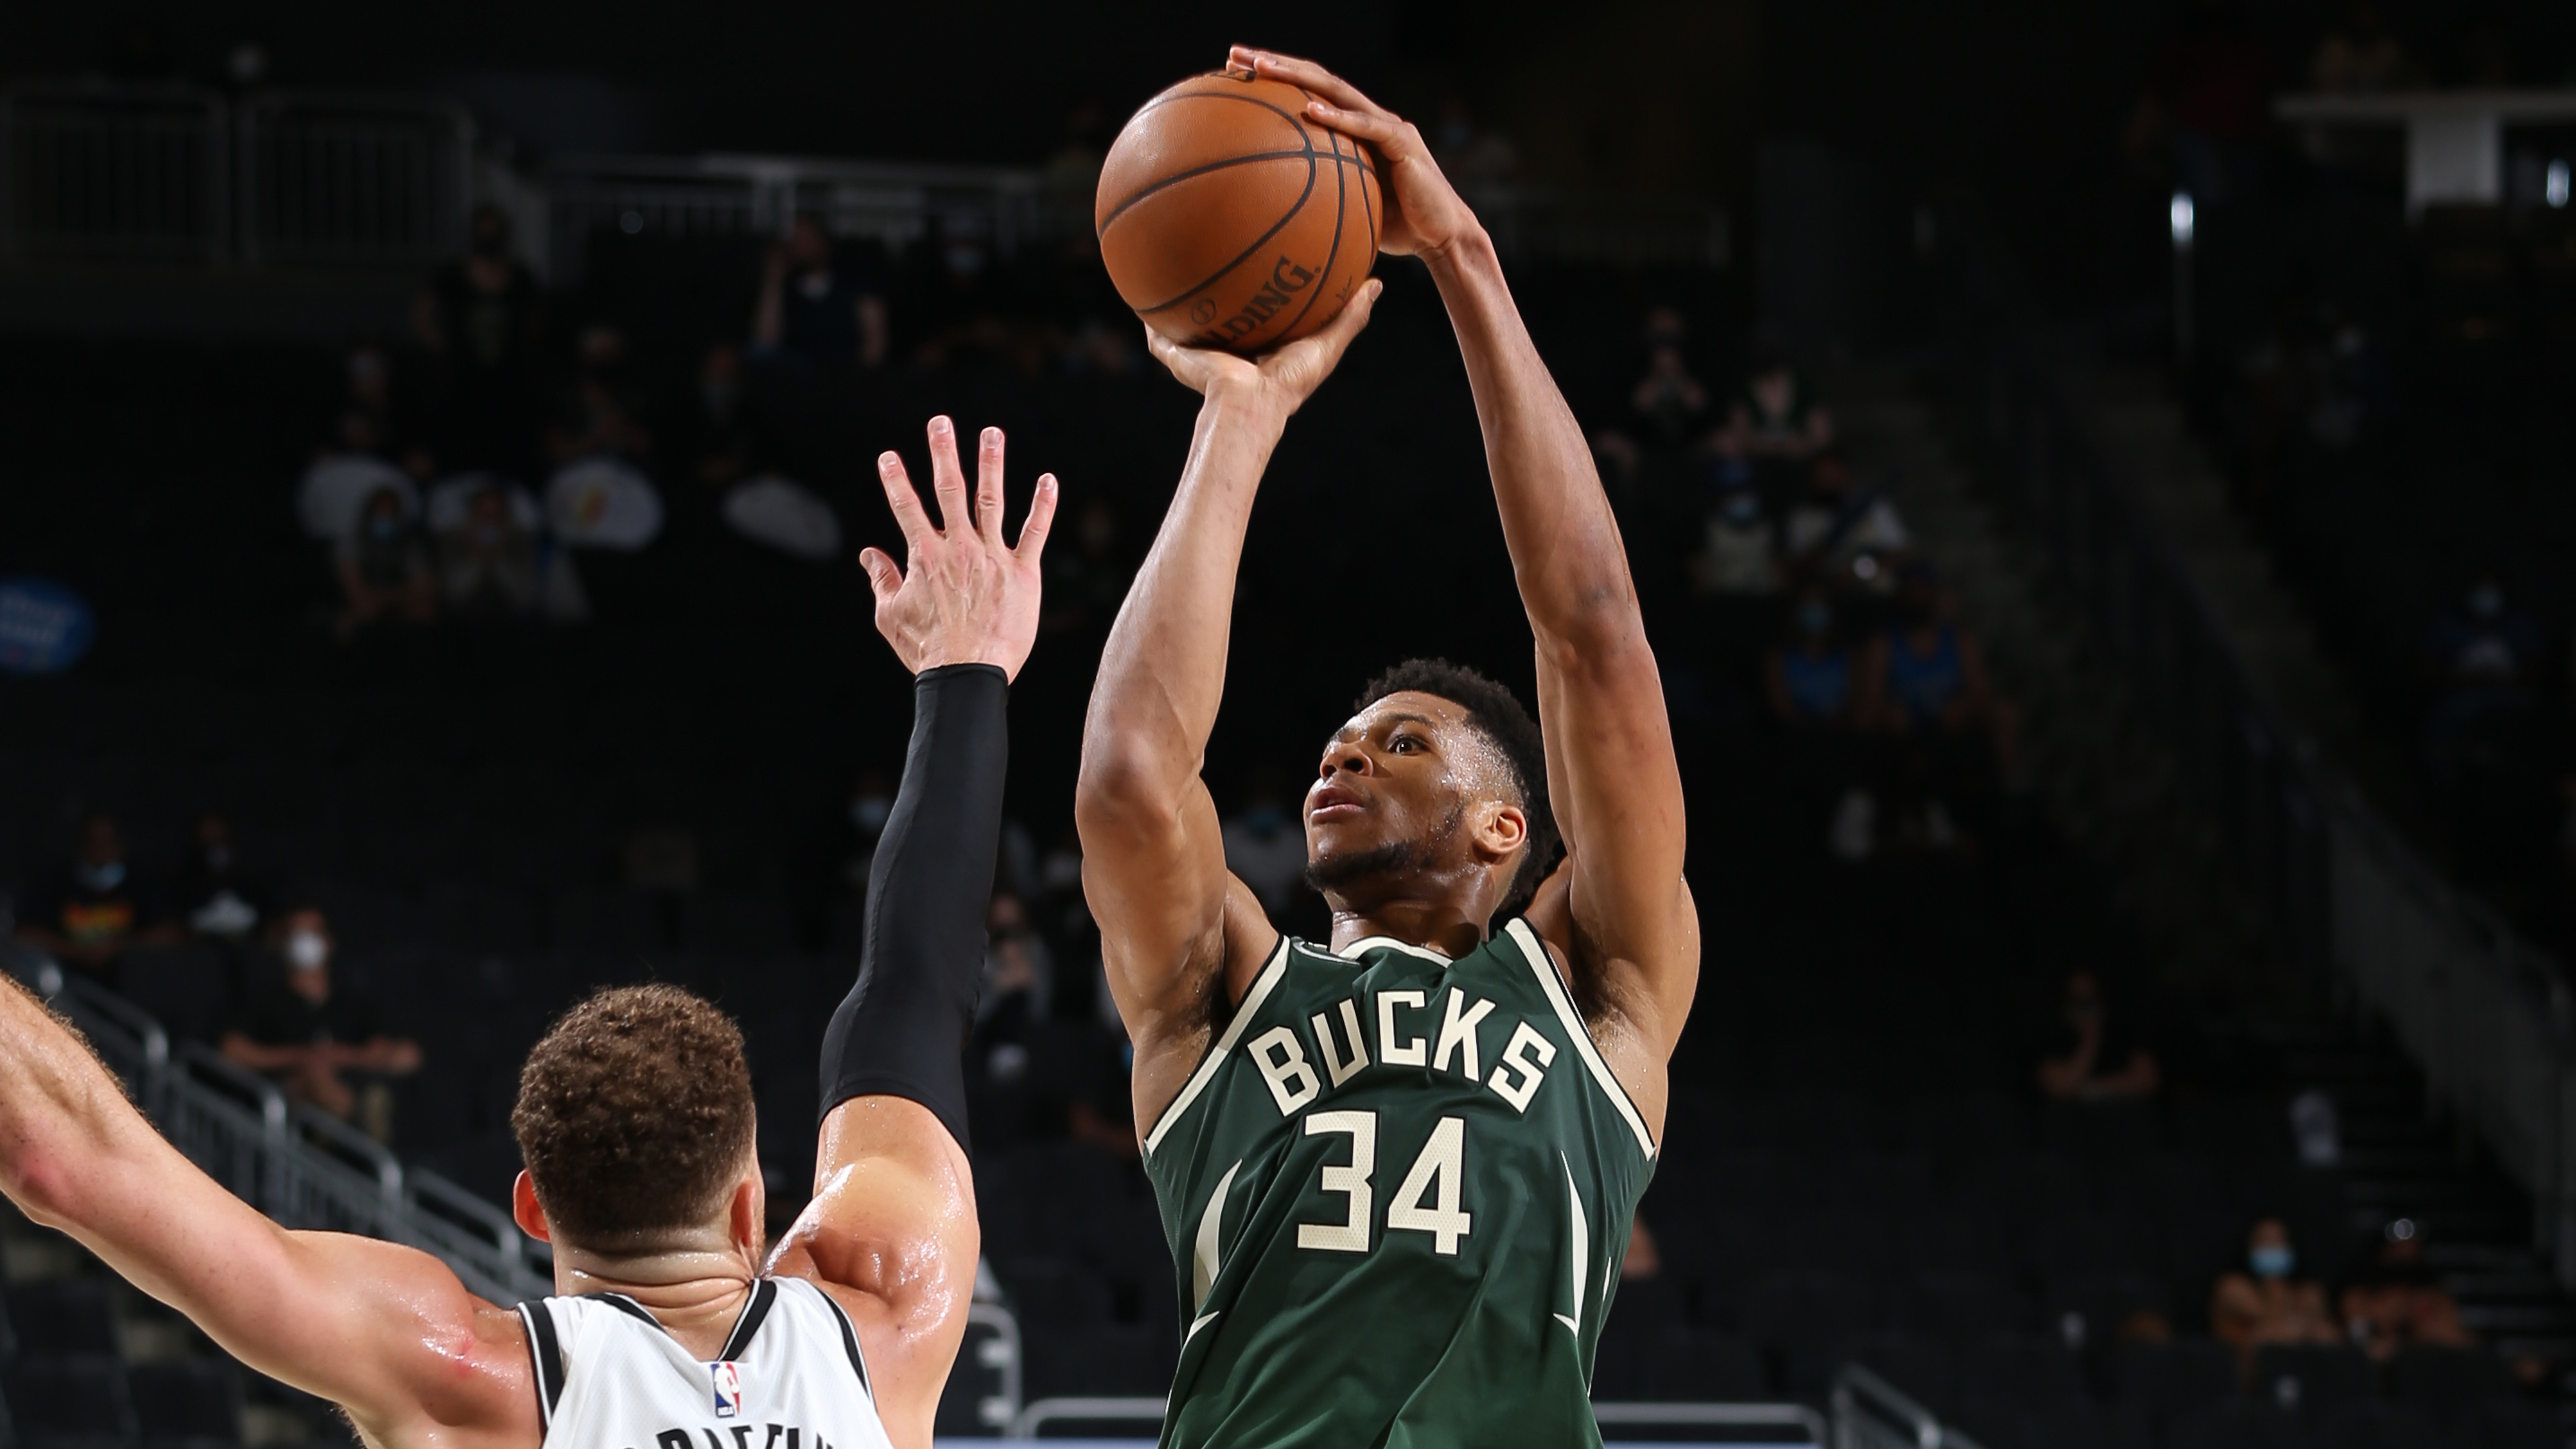 Inside The Mind of Giannis: Basketball Is Art